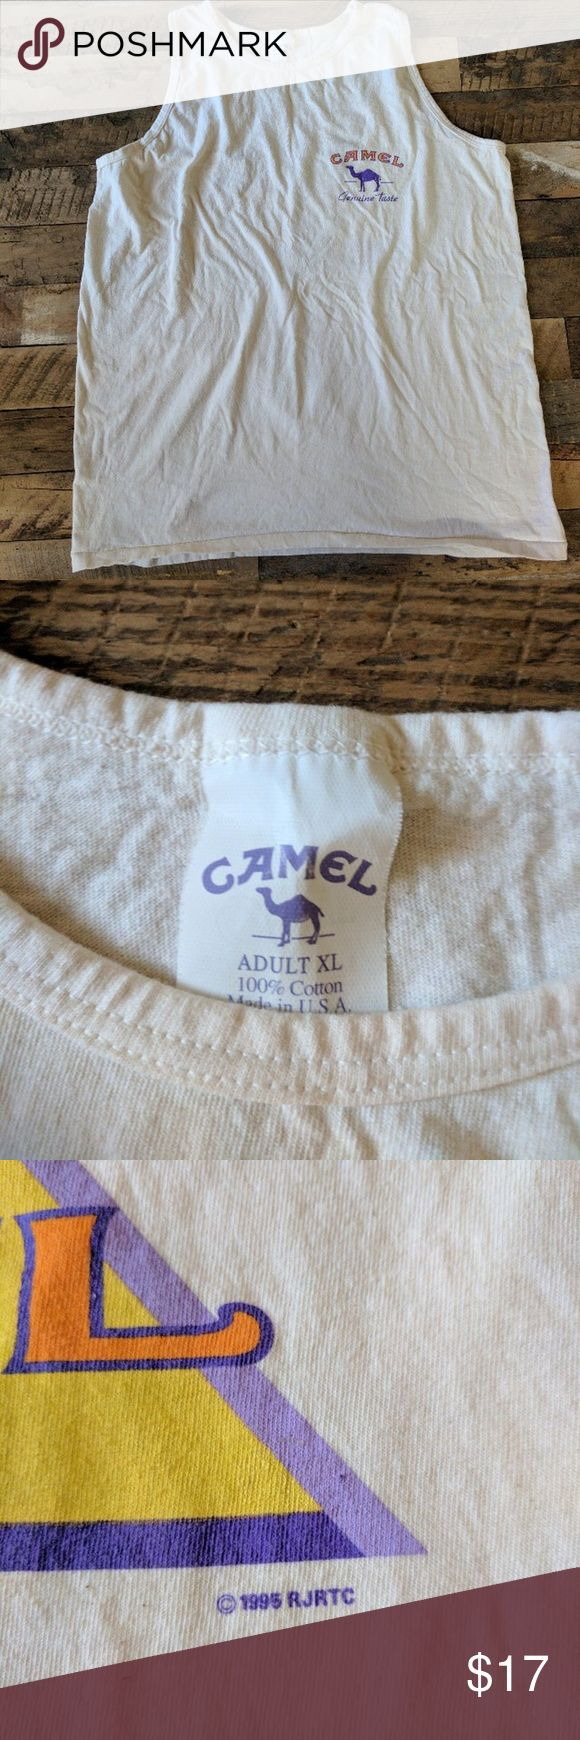 Vintage Camel cigarettes tank top Size XL Made in Vintage Camel cigarettes tank top Size XL Made in USA    #vintage #camel #joecool #cigarettes #tank #marlboro #cowboy #giveaway #beach #smoke #420 #nike #adidas #polo #madeinusa #depop #depopfamous Camel Shirts Tank Tops